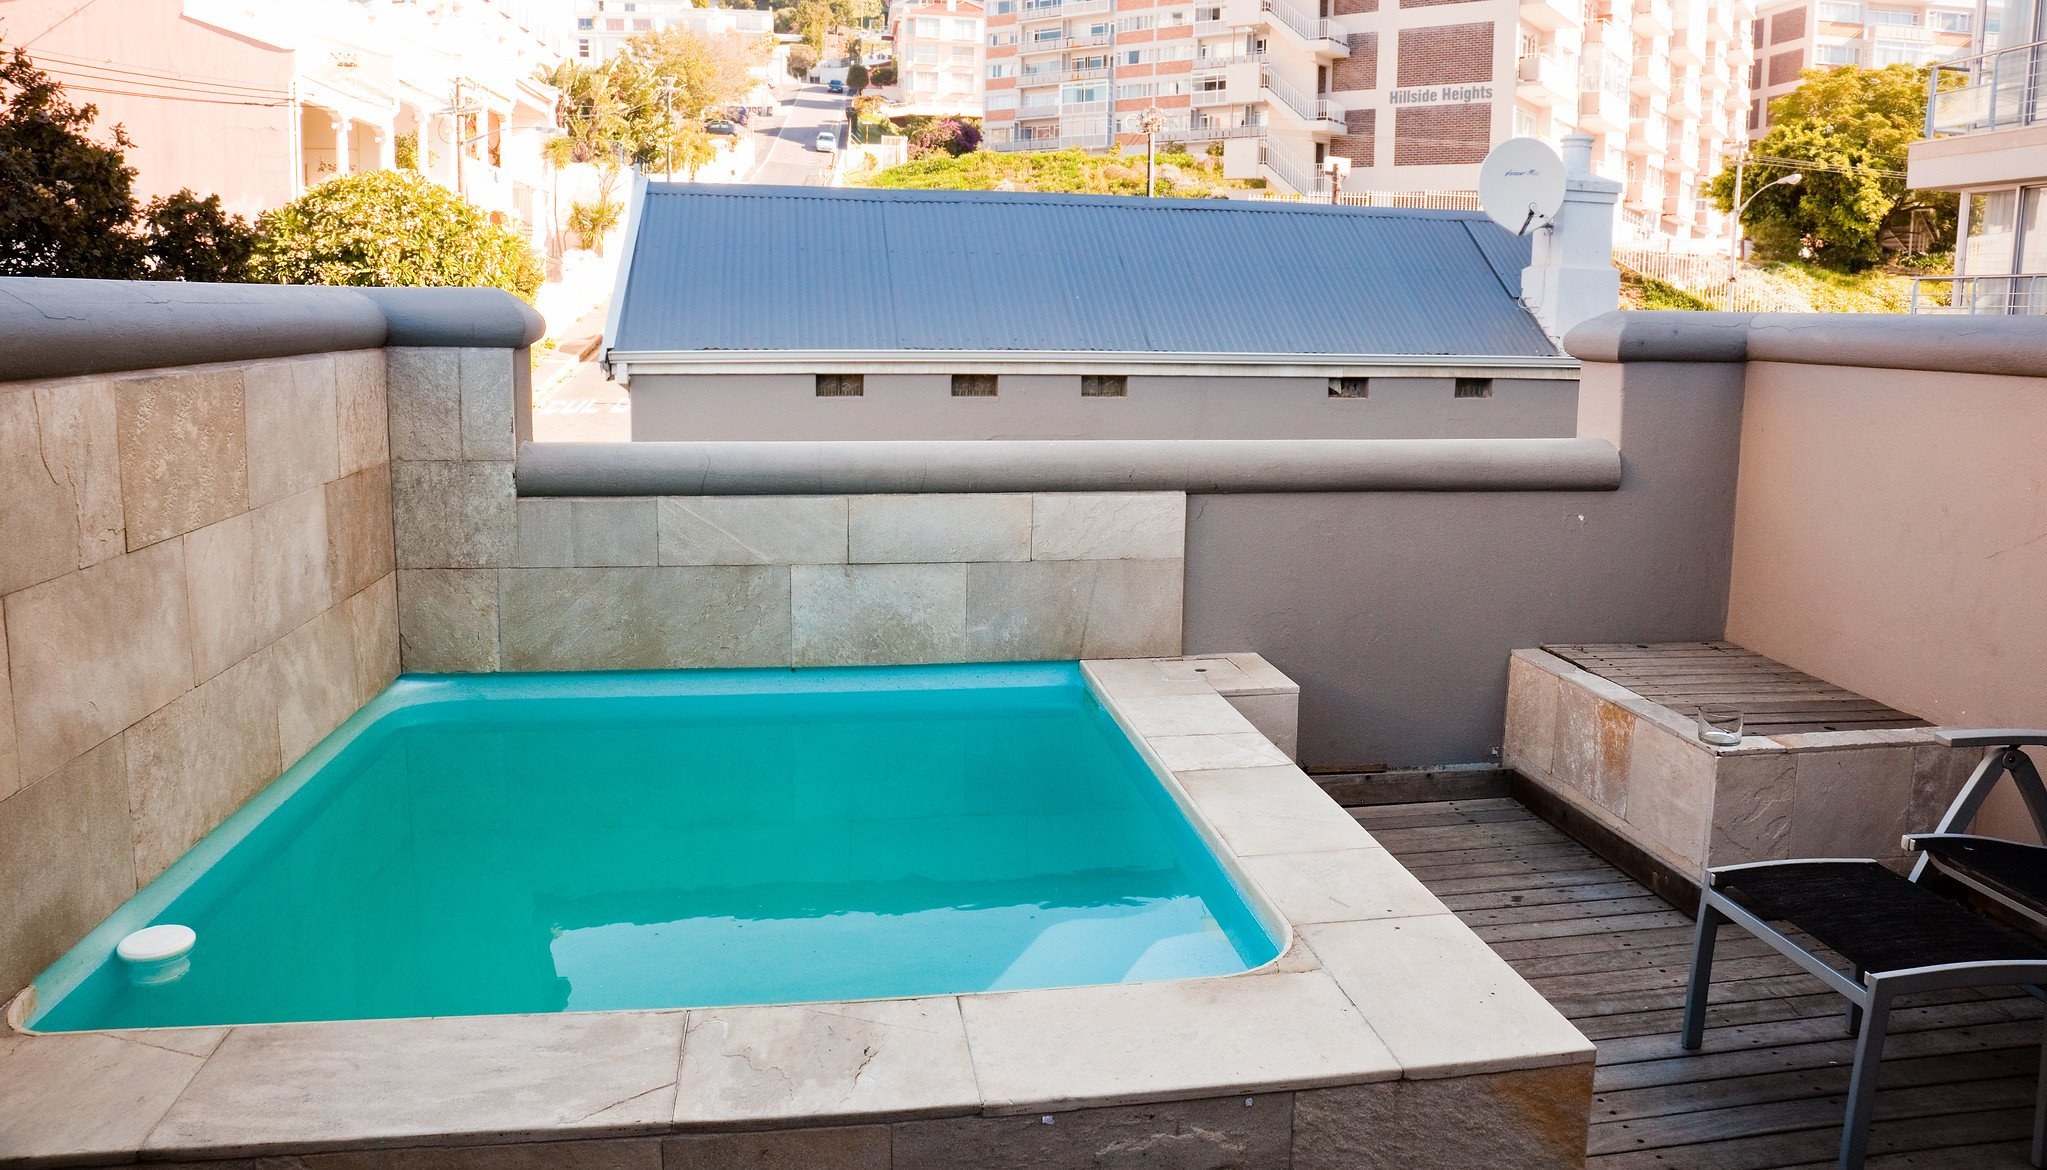 Plunge Pools, Cocktail Pools, and Spools: Which Pool Is Best for You?